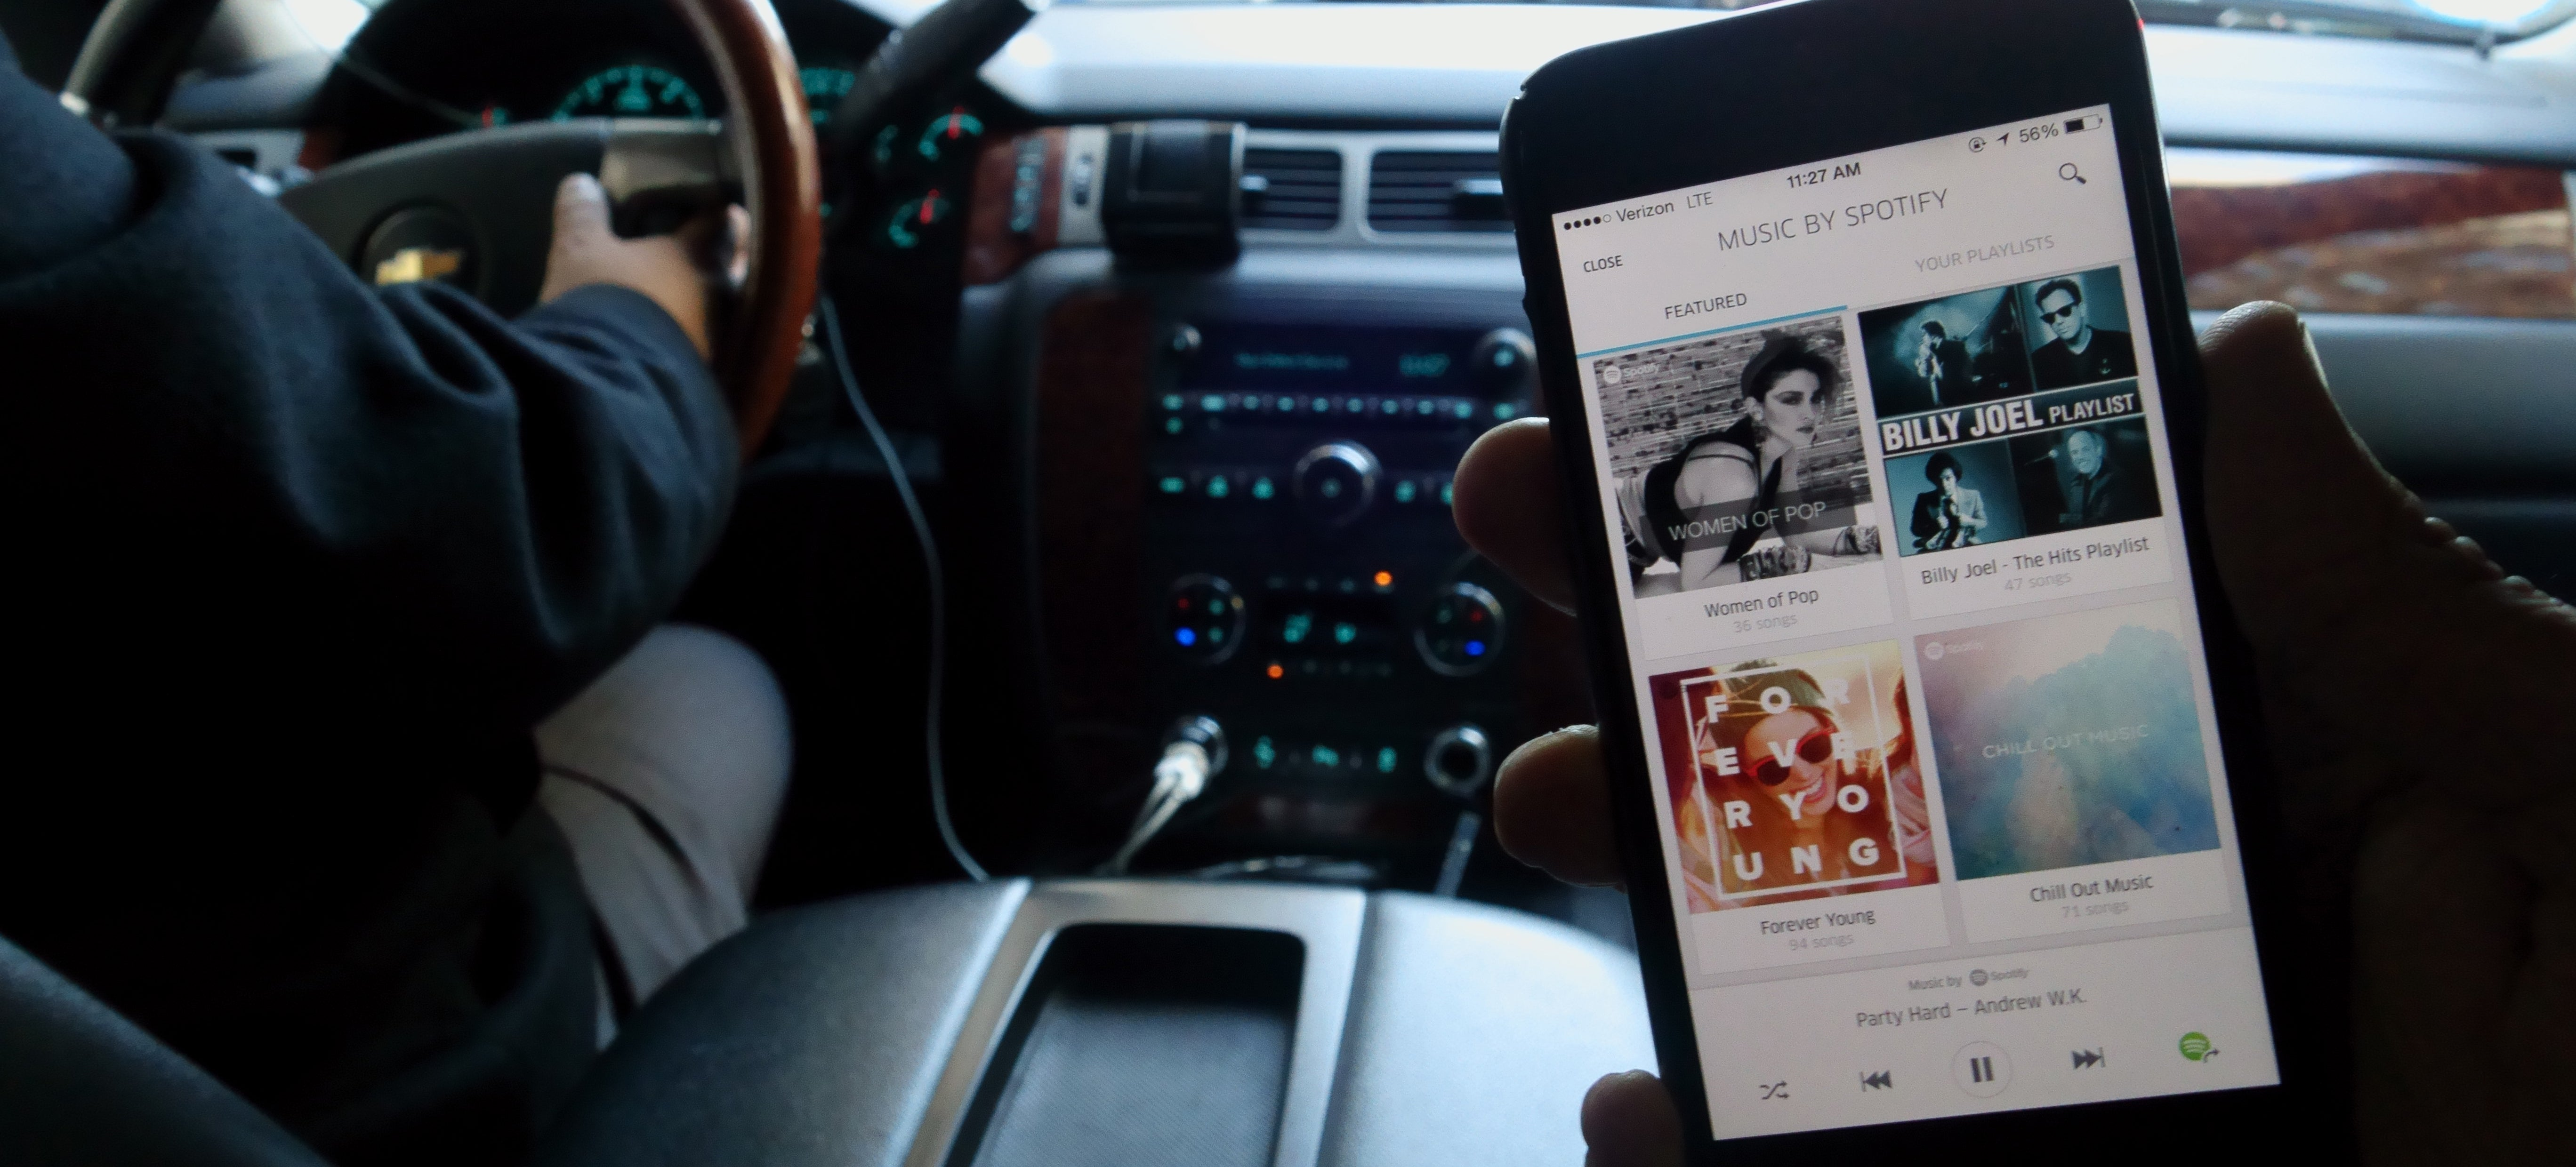 Ugh OK, Playing Your Own Music In an Uber Is Actually Pretty Neat